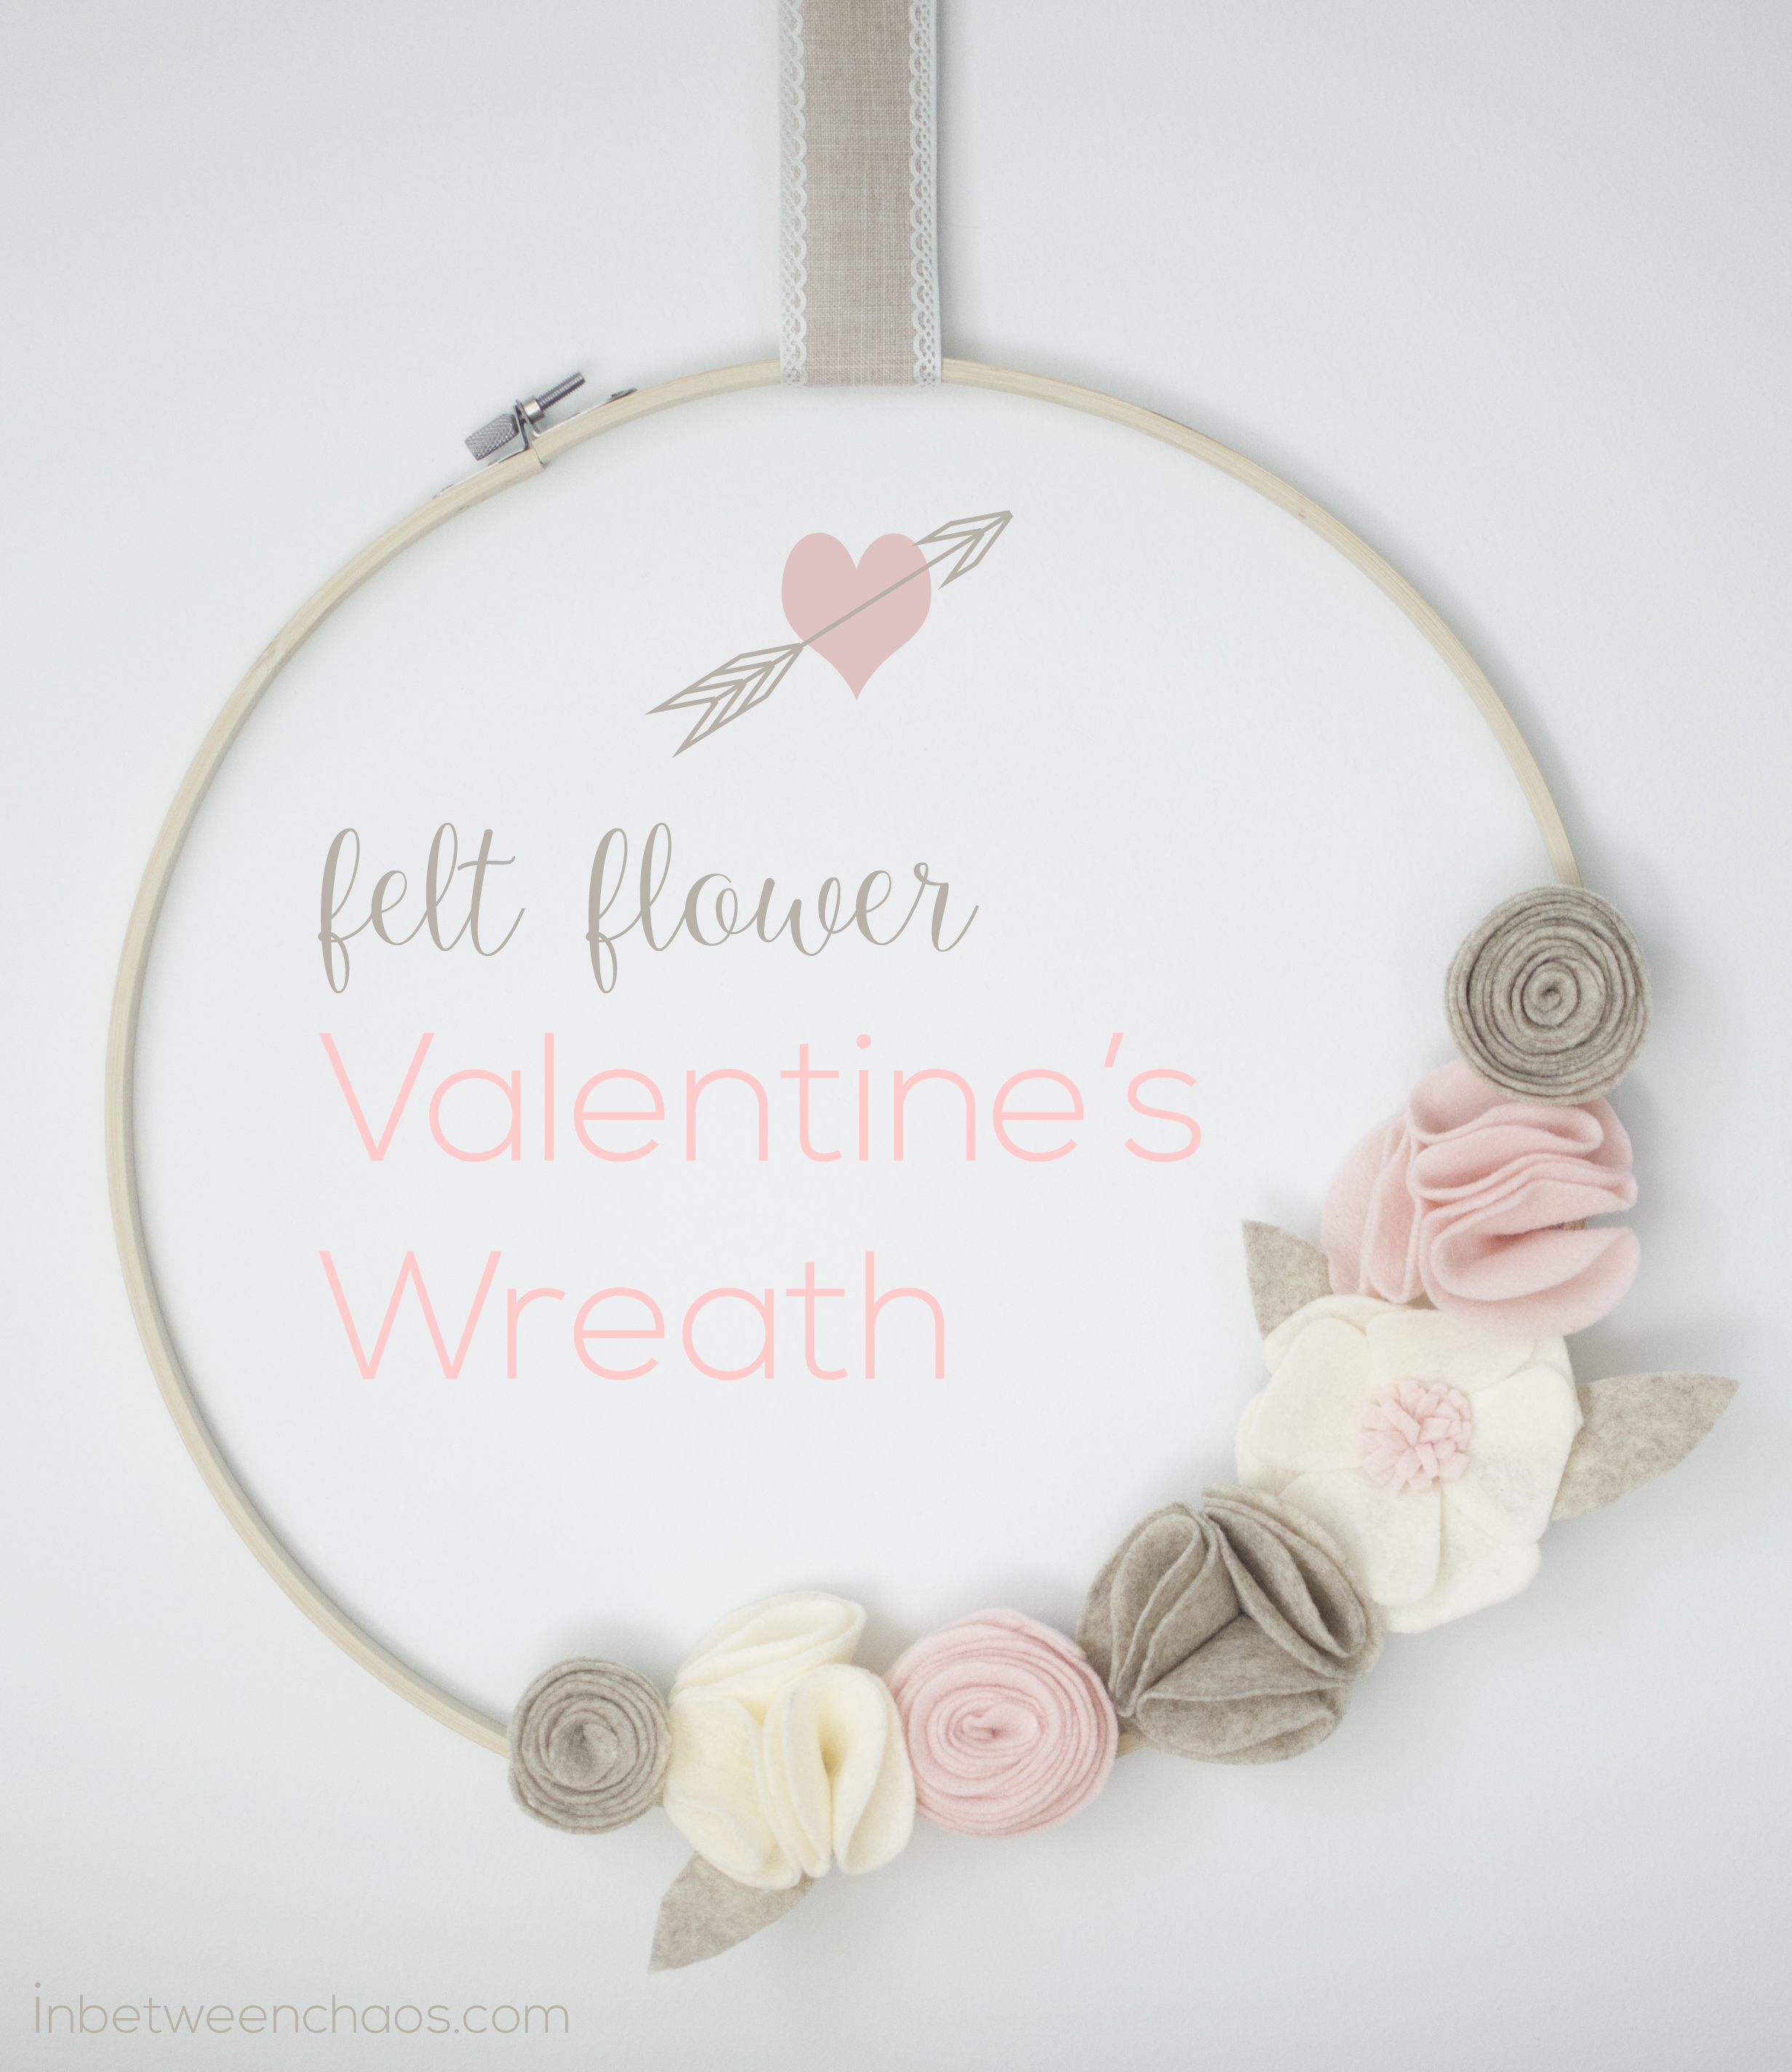 Felt Flower Valentine's Wreath | inbetweenchaos.com